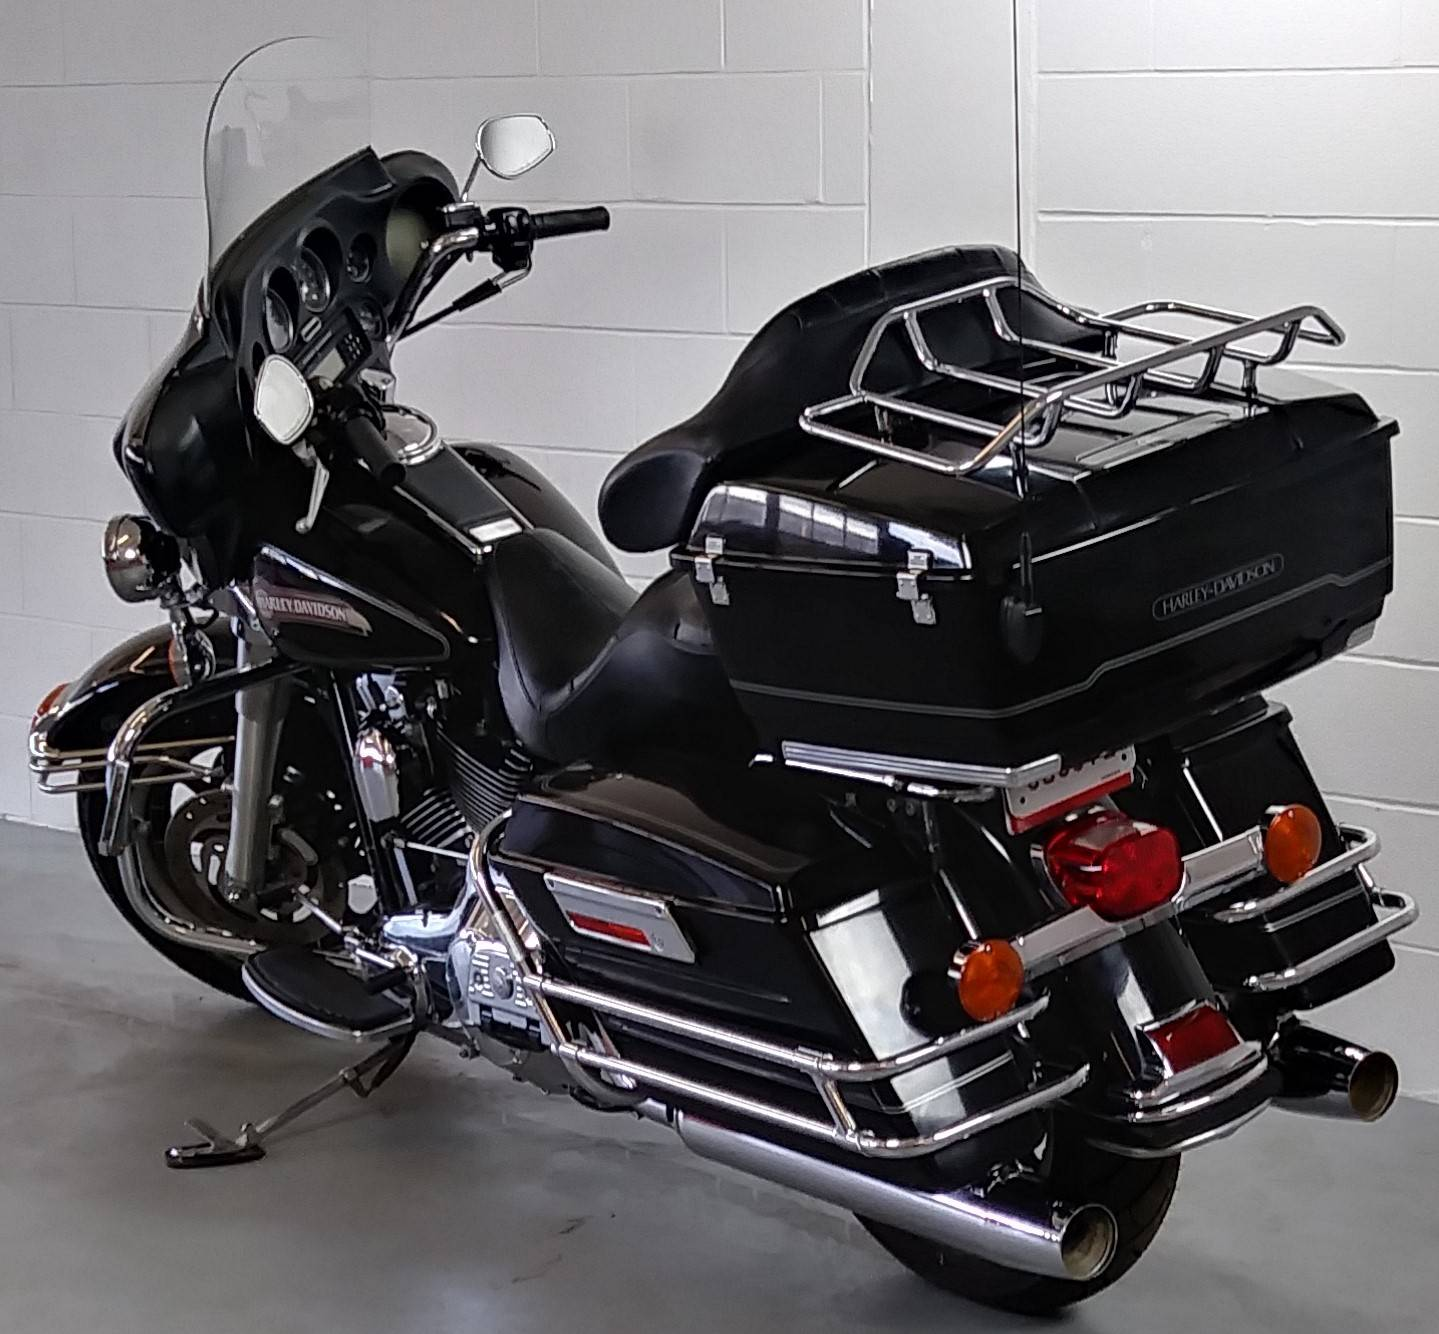 2006 Harley-Davidson Electra Glide® Classic in Stillwater, Oklahoma - Photo 5